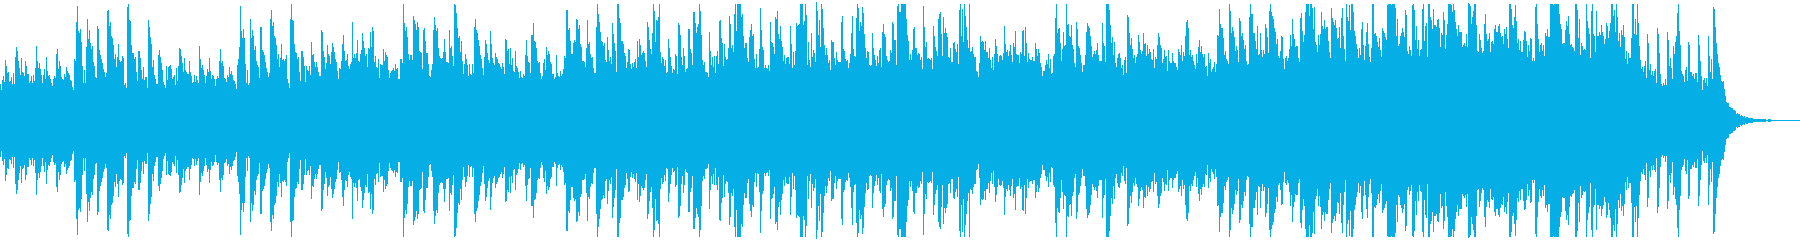 Sad and pitiful magnificent piano strings's reproduced waveform